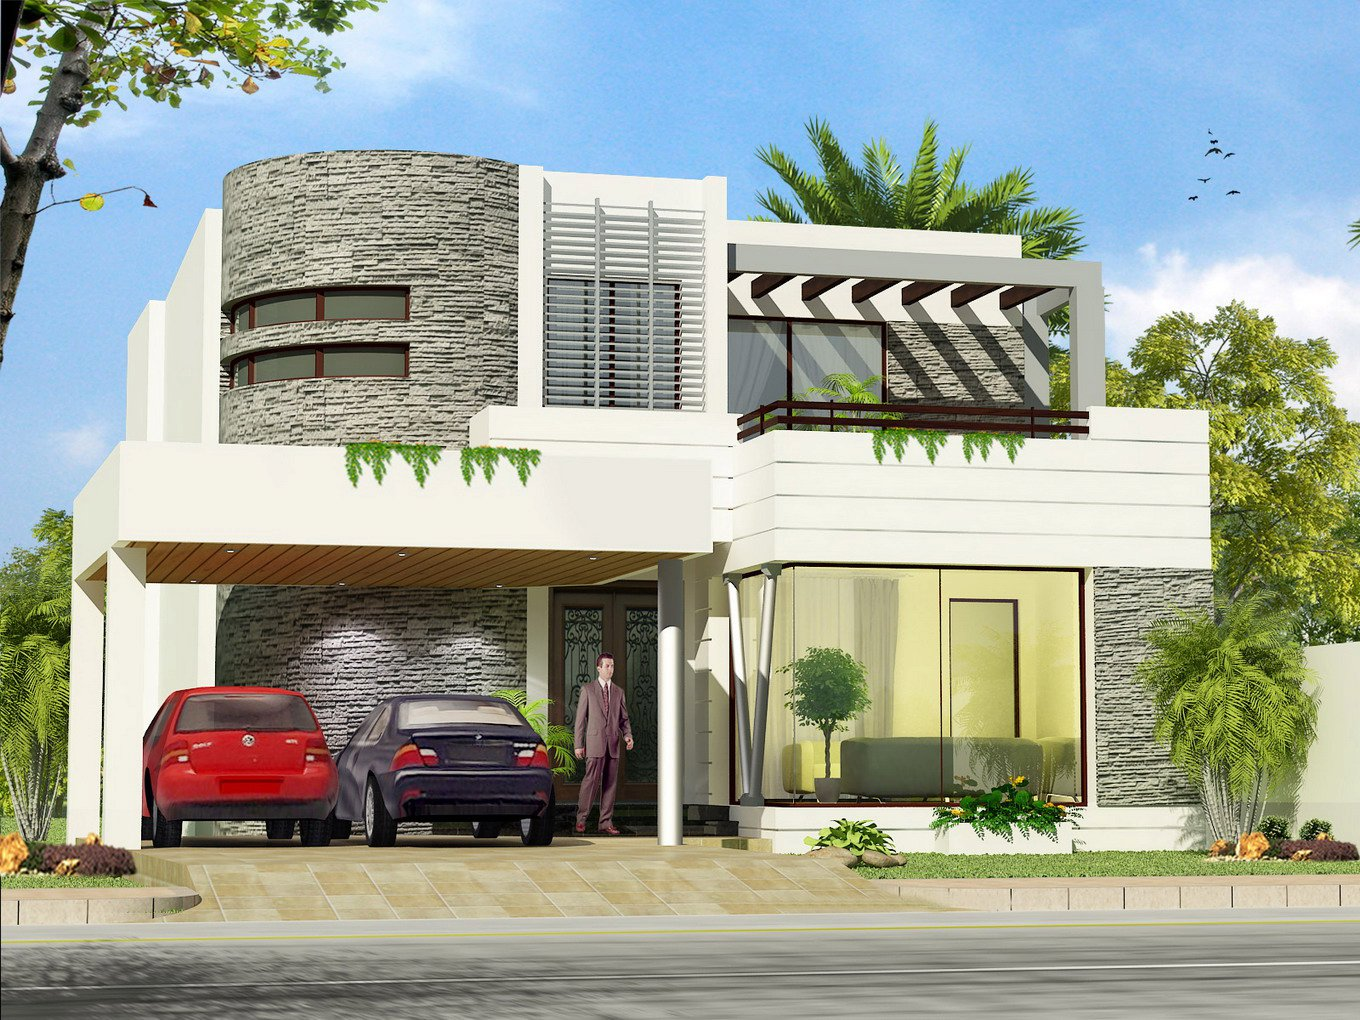 Brilliant Modern Home Design Exterior 1360 x 1020 · 354 kB · jpeg